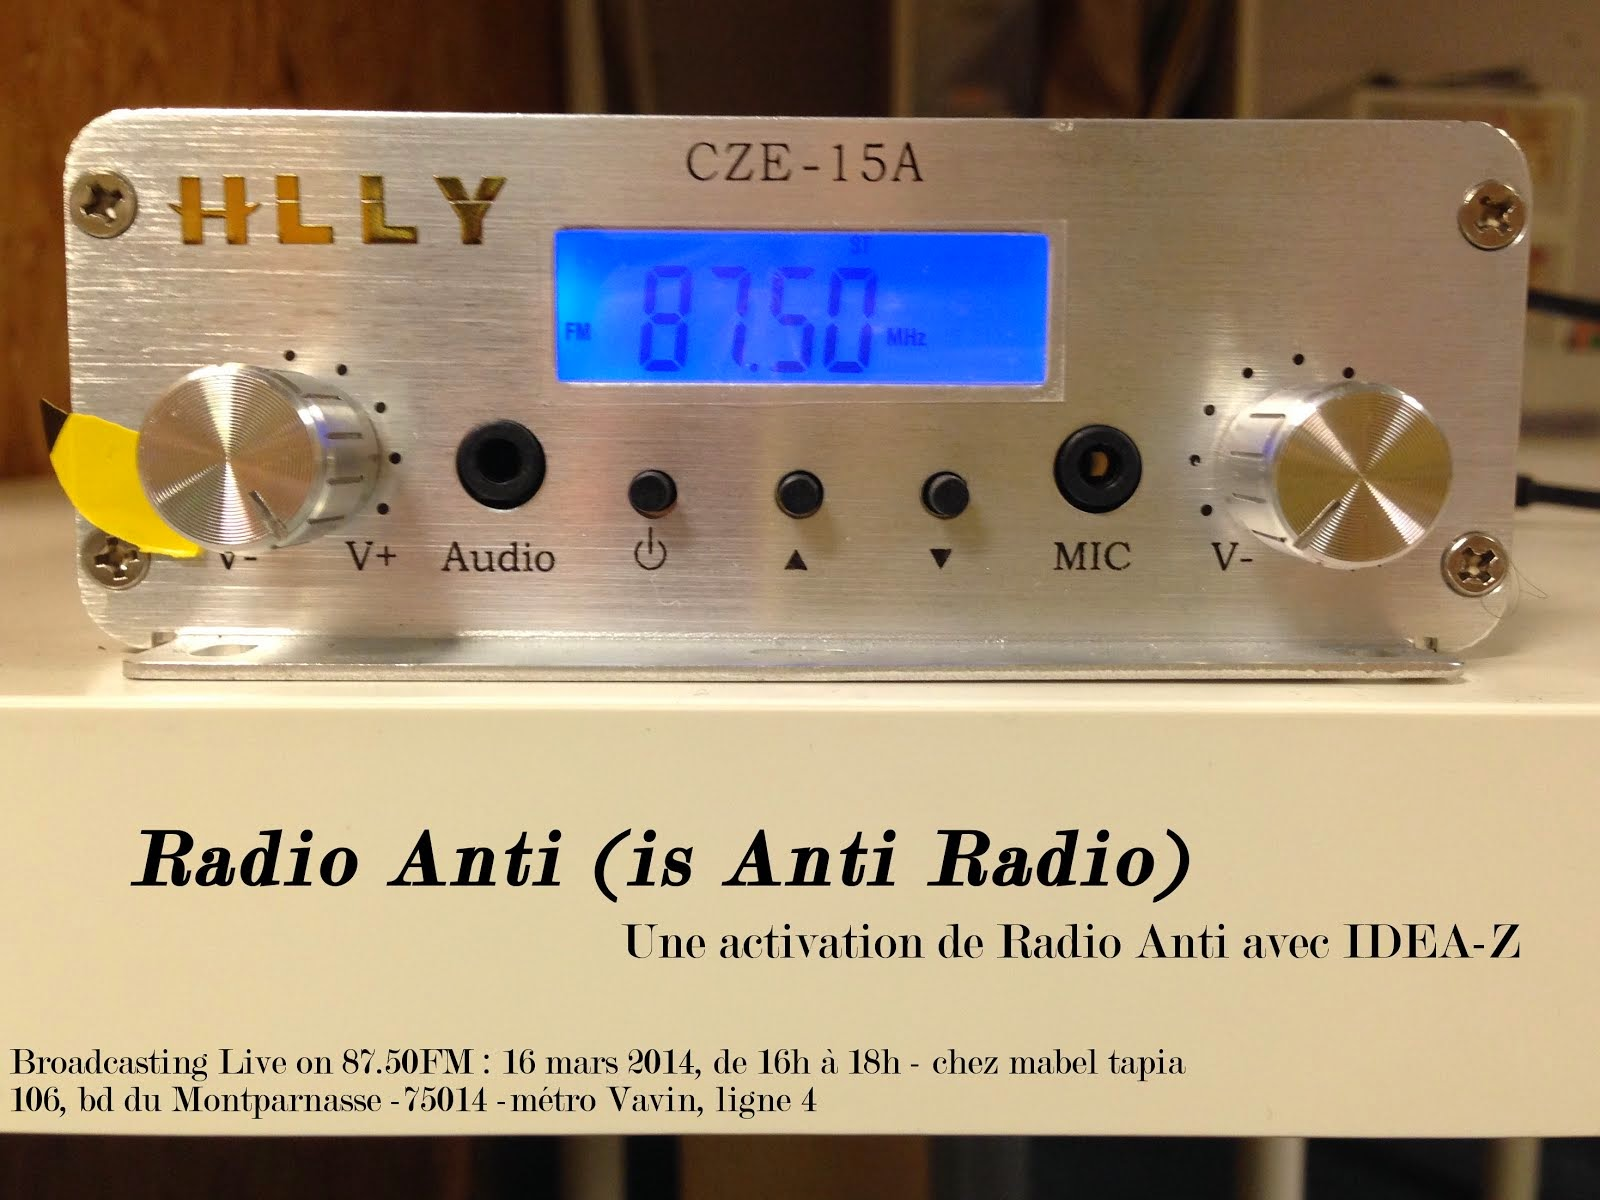 Radio Anti (is Anti Radio)